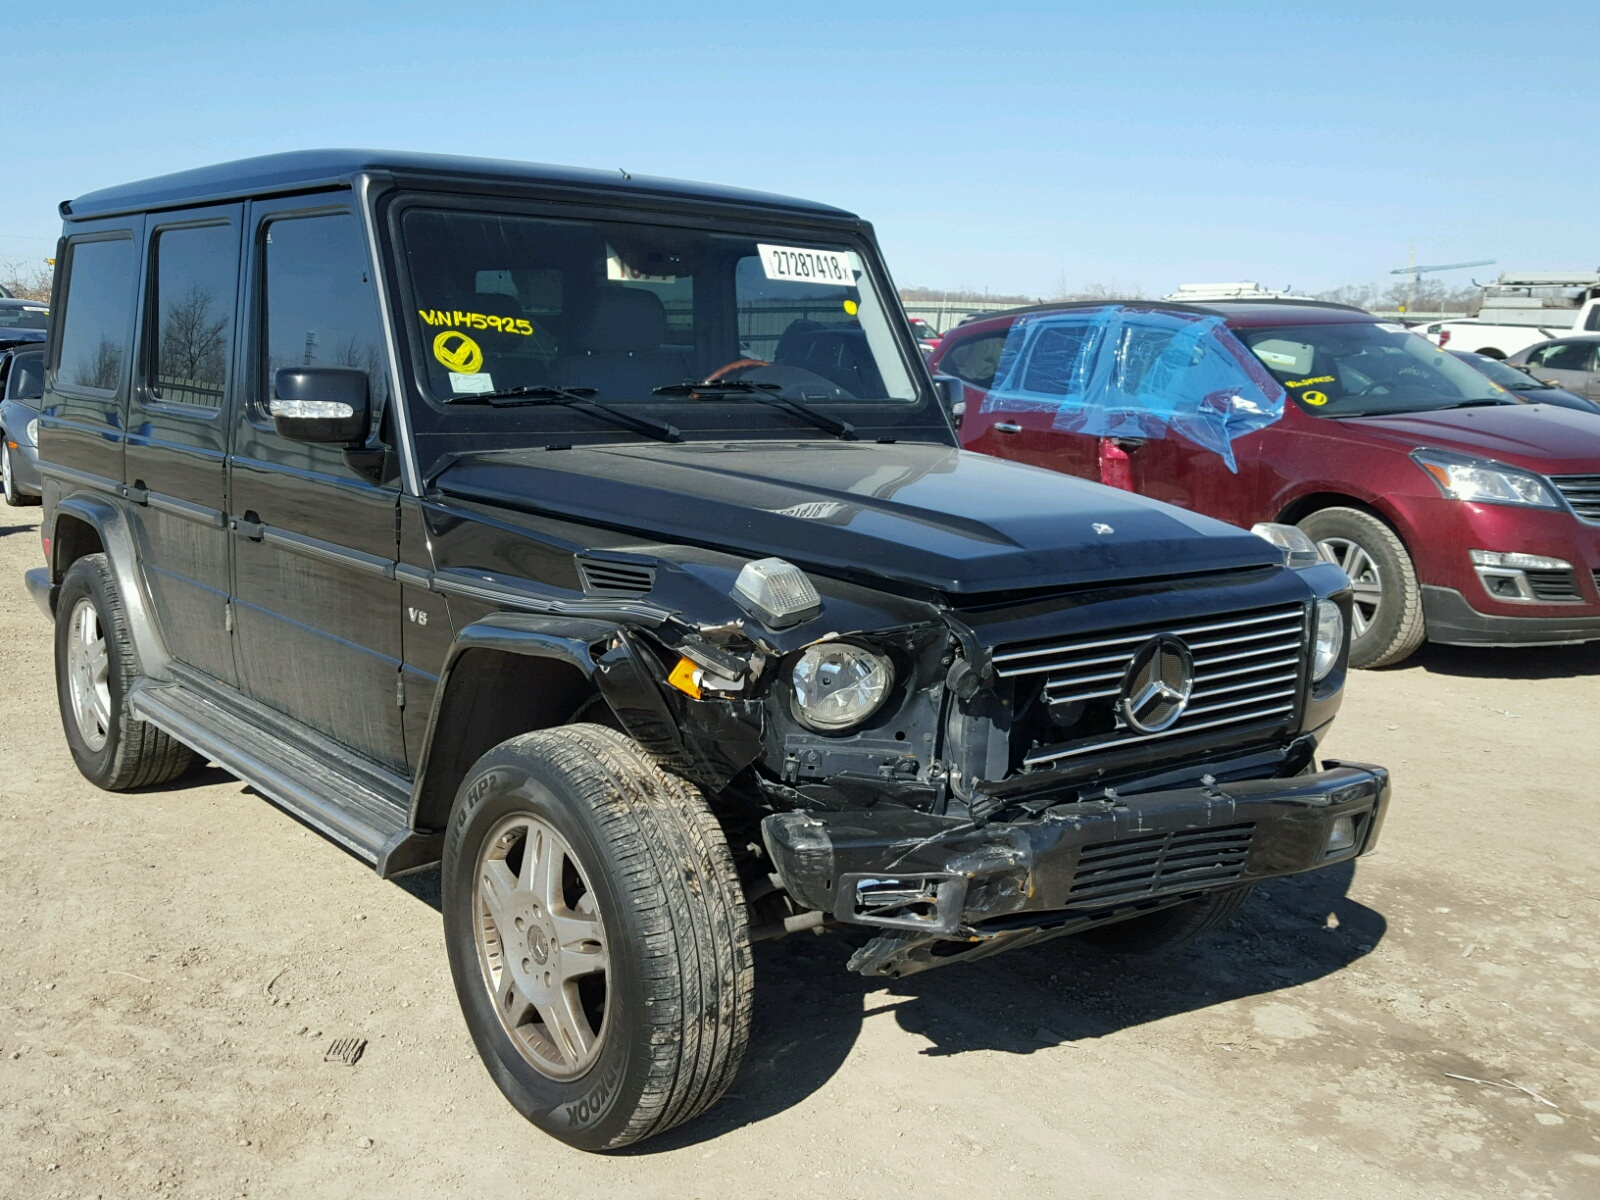 Salvage auto auctions in los angeles ca 15